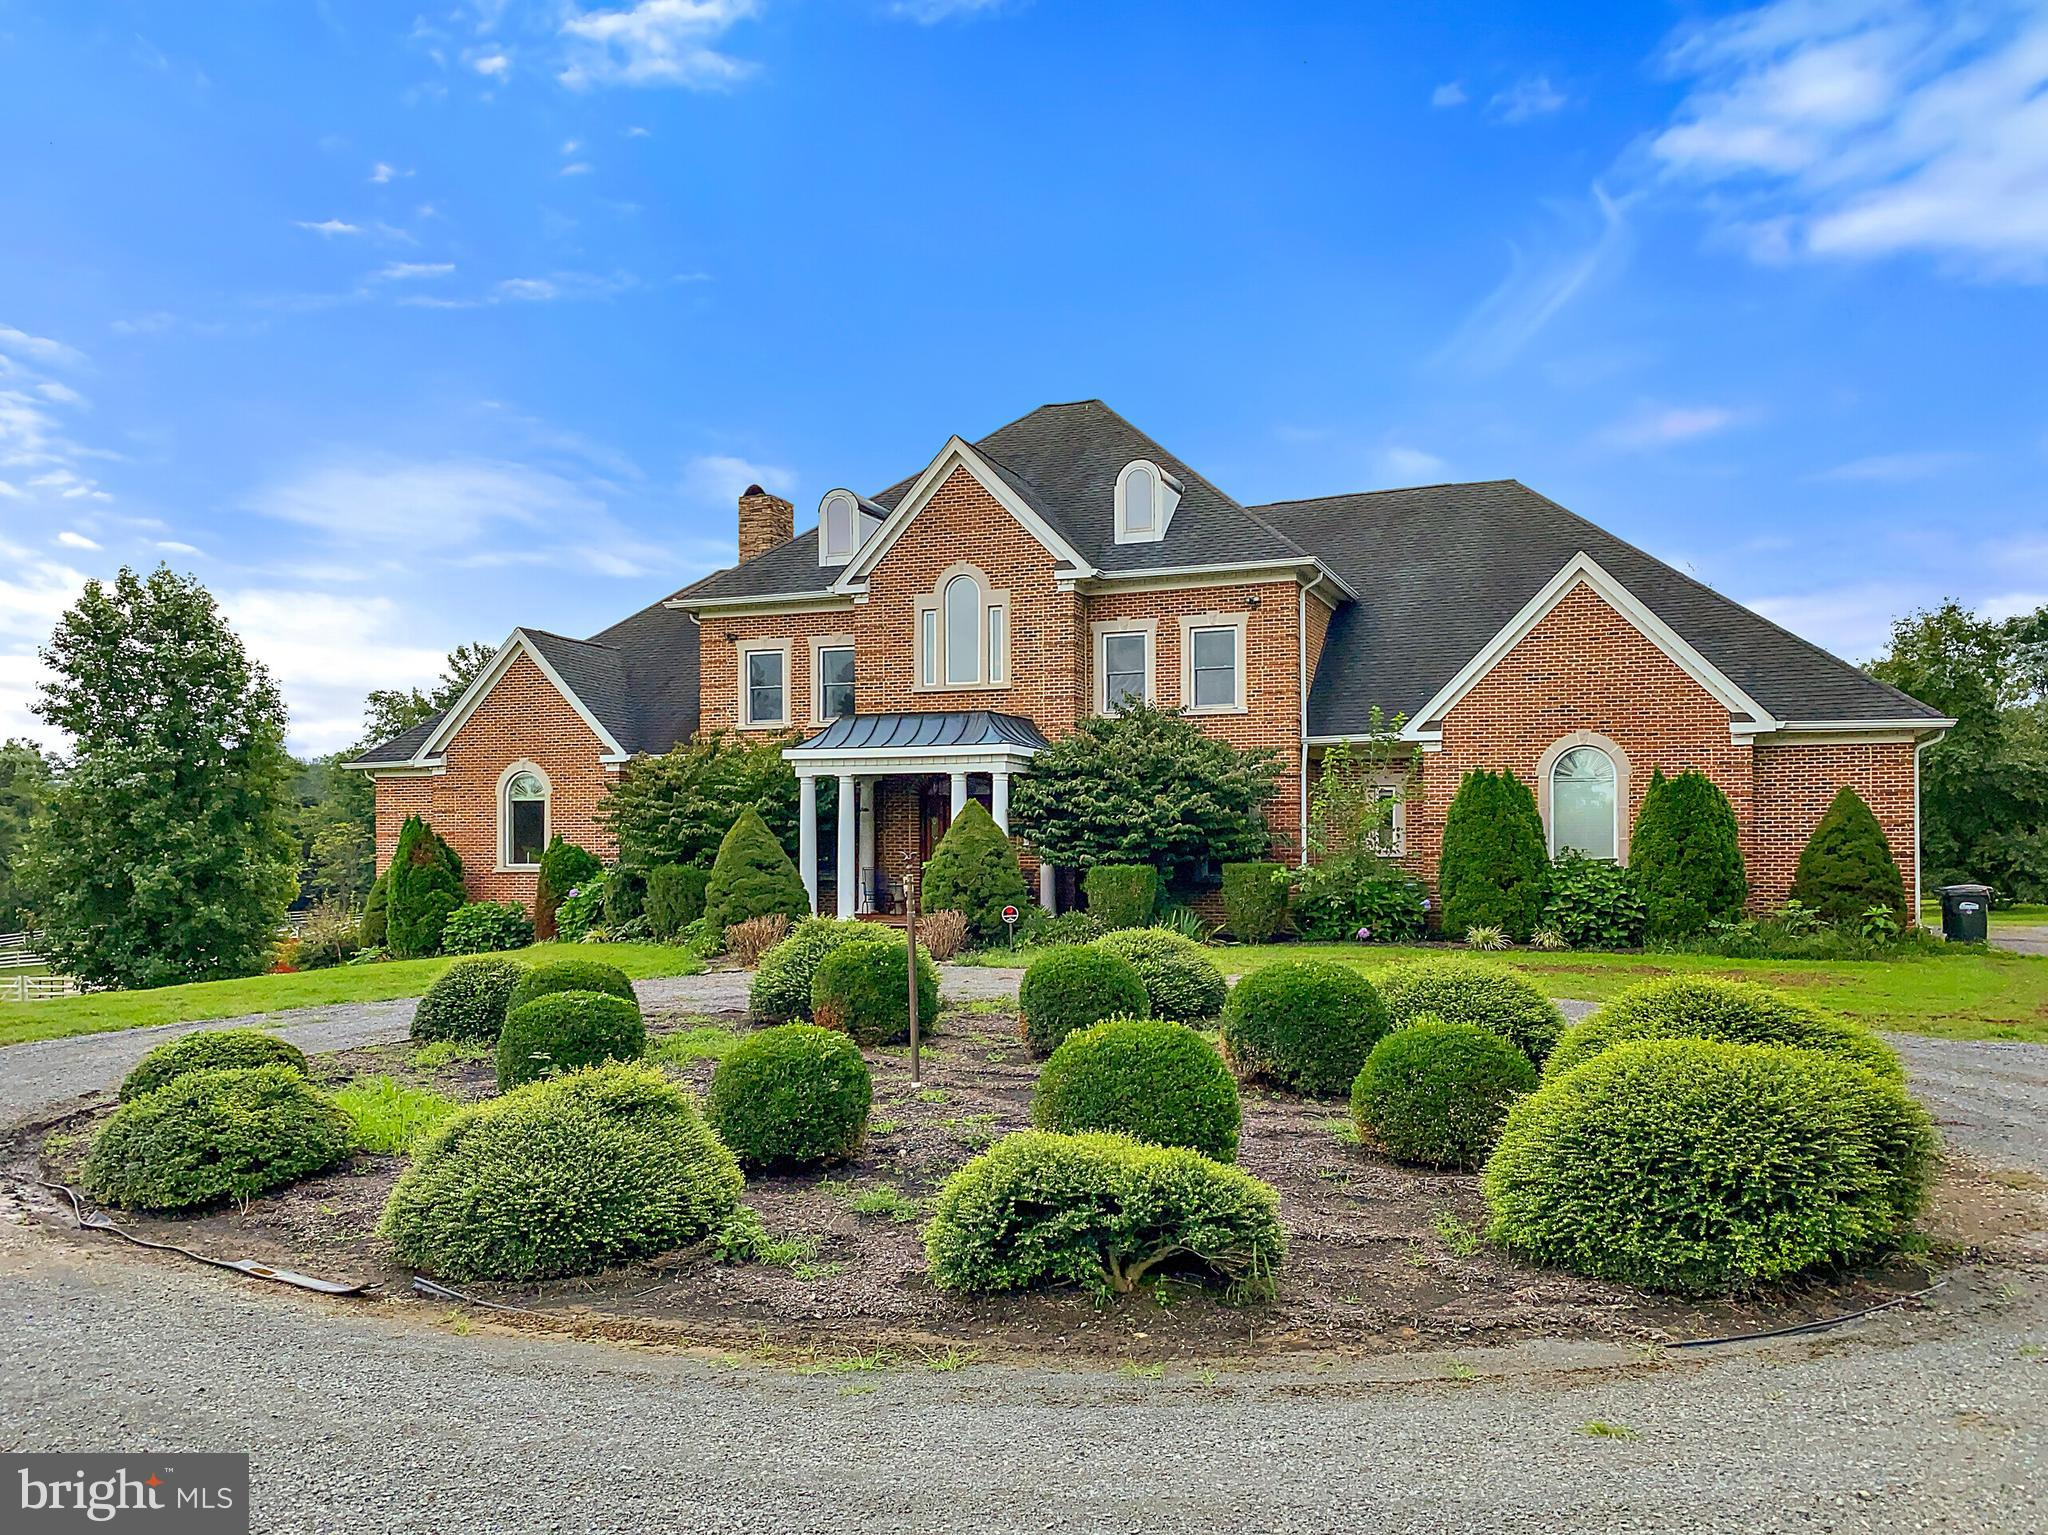 Welcome Home to 16866 Hamilton Station Rd, Hamilton VA.  This All Brick Manor Custom-Built Home is Perfectly Situated on 10 Acres with its Onsite Vineyard, a 6-Stall Horse Barn with High-Tensile Polymer (HTP) Fencing, Pastures, and Offers Amazing Views and Privacy with Extensive Installation of 240 Western Red Cedar (Cypress) Privacy Trees Around the Property. NO HOA & High-Speed Internet is Available!   This Gorgeous Home Includes 6 Bedrooms with a Main Floor Owners Suite and On Suite Bathroom, 5 Full Bathrooms, Grand Foyer with Marble Flooring and Beautiful Curved Staircase to Upper Level, Formal Living and Dining Room, Office / Den, Large Kitchen with Upgraded Stainless Steel Appliances and Island with Granite Countertops, Eat-In Kitchen Area that Leads to the Large Deck Overlooking the In-Ground Swimming Pool, Family Room, Main Level Laundry Room, 3 Fireplaces, and 4 Car Garage.  Custom Detail Work Throughout this Home Includes 9 ft. Ceilings, Crown Moldings, Chair Railings, Window Treatments, Hardwood Floors, Marble Foyer, Granite Countertops in Kitchen and Bathrooms and Much More.  Property Includes an Open Canvas for its New Owner to Customize the Unfinished Basement Area (3,331 Sq. Ft) for Additional Living Space with Walkout Access to Large Back Yard and has 2 Rough-Ins for Additional Bathrooms or Possible Lower Level Living Suite.  Portion of the Unfinished Basement Area Converted into the Properties Own Wine Making Facility for Harvesting Approximately 1.5 Acres of Beautiful Vitis Vinifera Vineyard to Produce Your Own Cabernet Sauvignon and Cabernet Franc Wines.  Home Offers Energy Efficiency with Geo-Thermal Technology for Heating and Cooling that Provides Overall Lower Cost for Utilities.  Outdoor Structures Include a 6 Stall Barn with 2 Large Pastures, Run-In Shed, High-Tensile Polymer (HTP) Fencing, and Large Equipment / Storage Shed.  This Home is Move-In Ready. Conveniently Located Within Walking Distance of the W&OD Walk / Bike Path, Nearby Shoppin